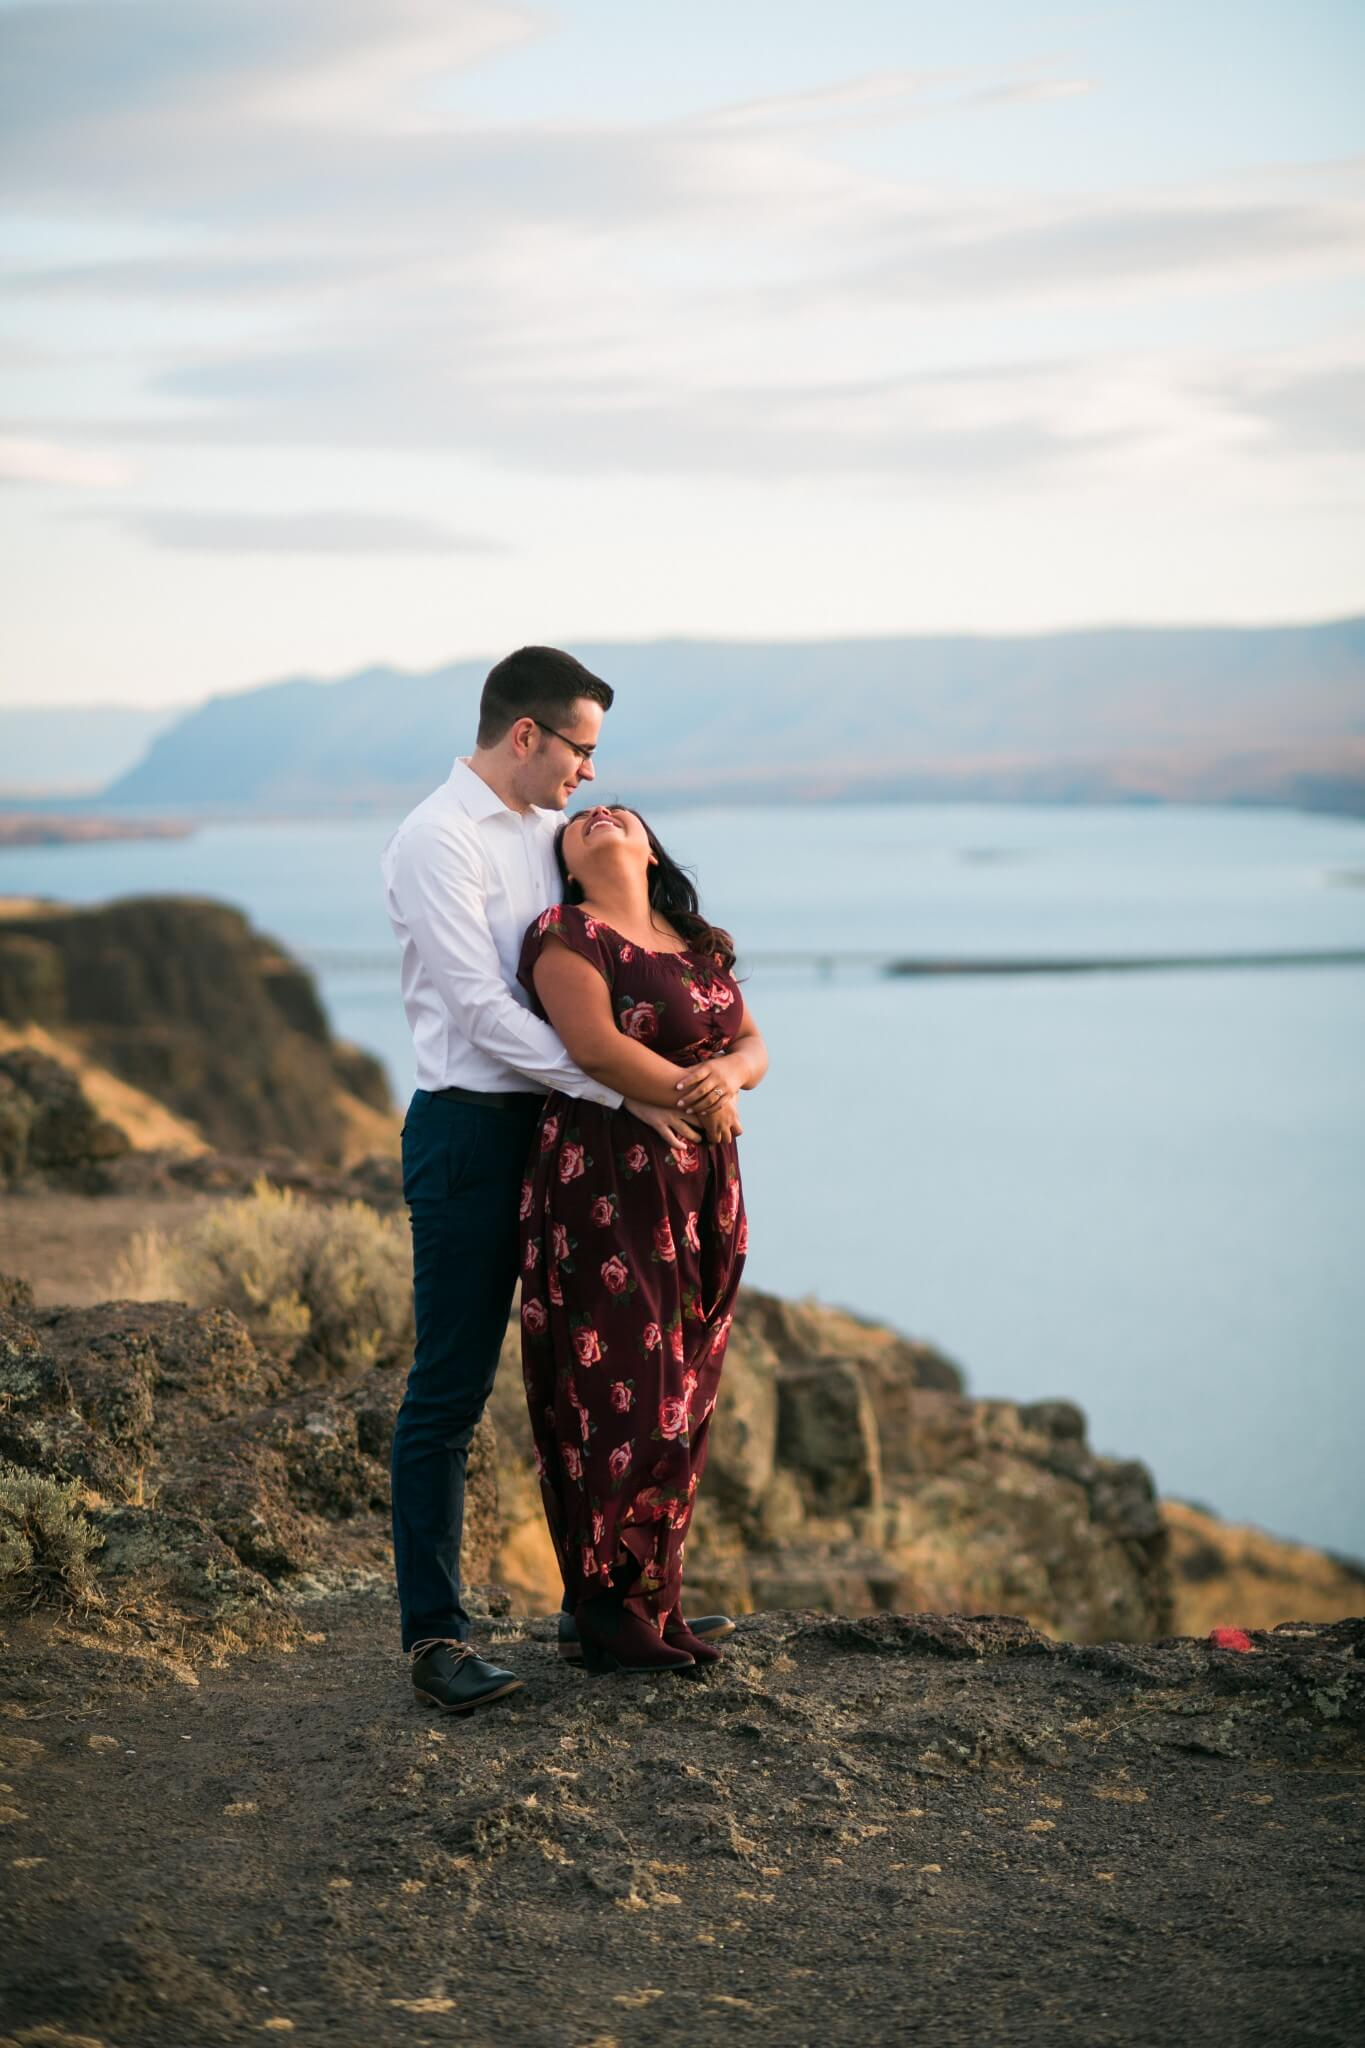 Lesly & Michael Vantage Engagement by Bill Weisgerber Spokane Photographer (35 of 71).jpg